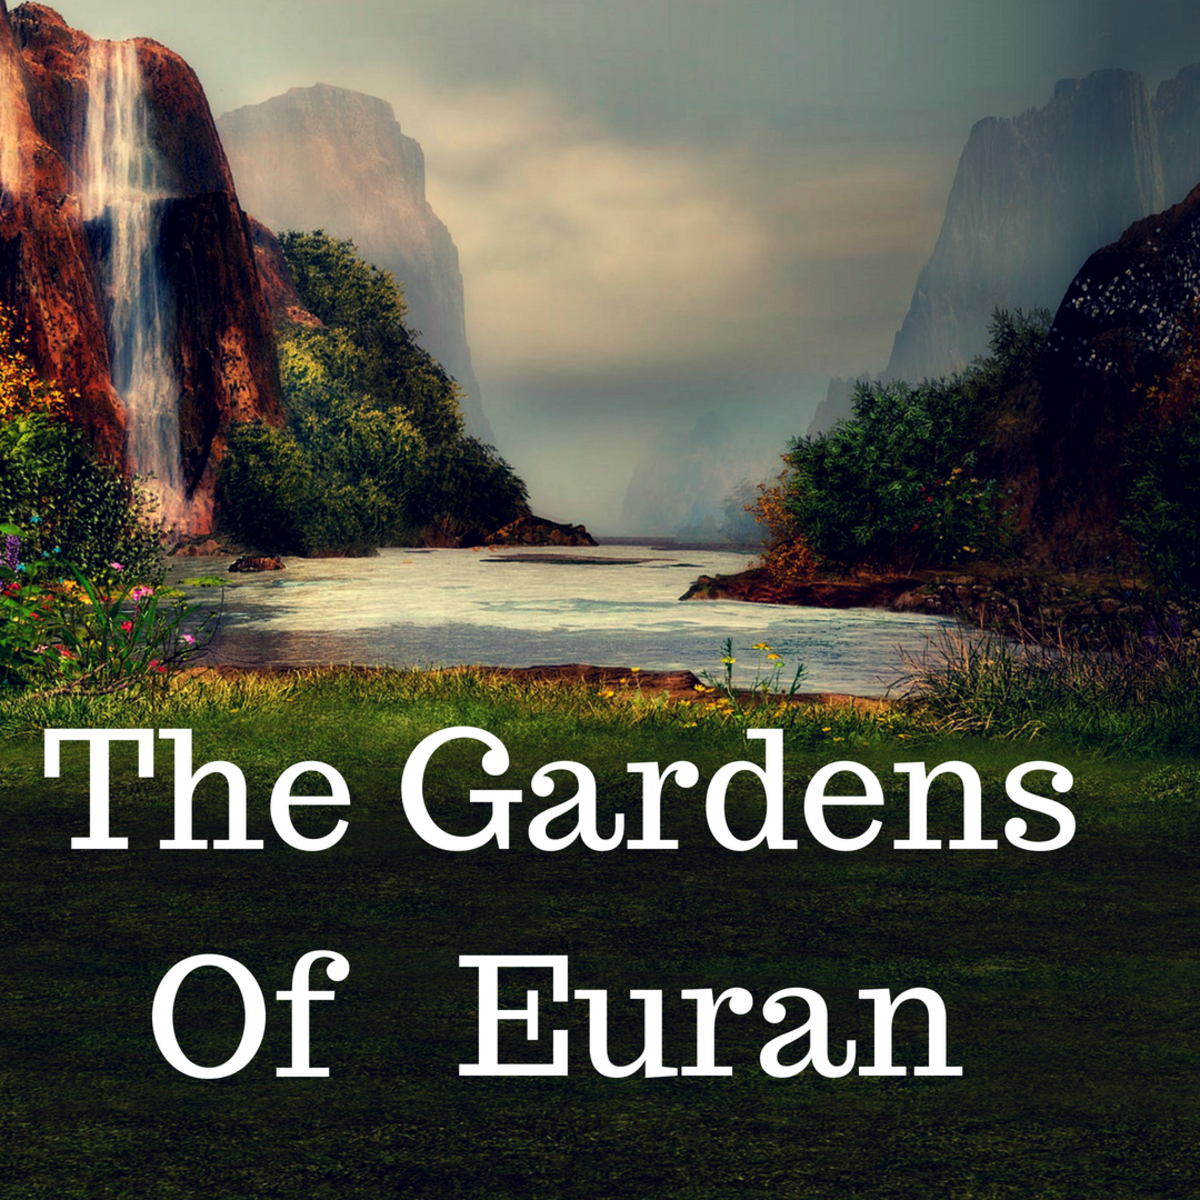 The Gardens of Euran: Chapter 2 (a novella)